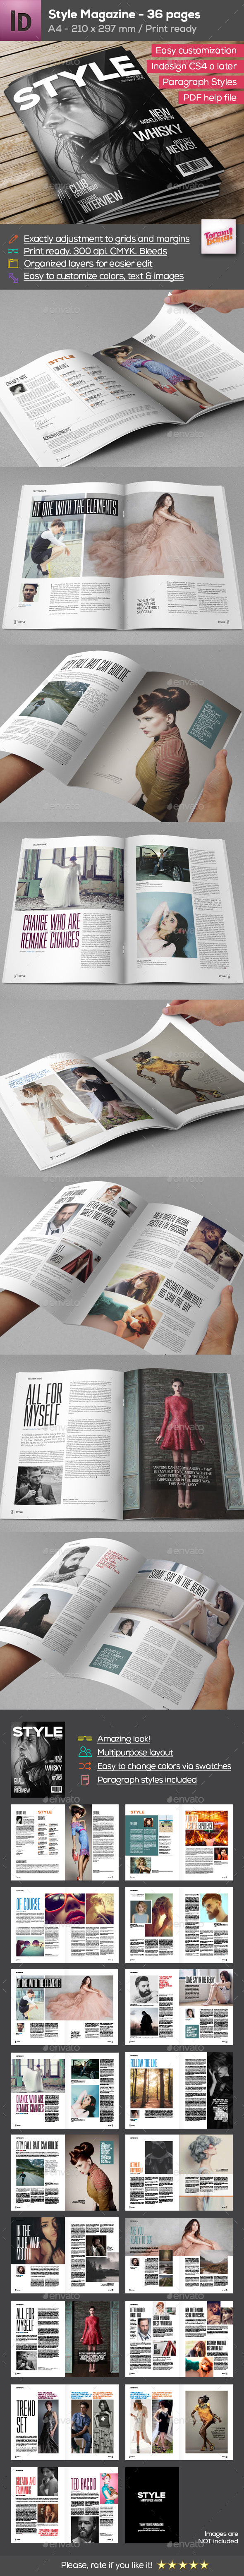 Style Magazine A4 - 36 Pages - Magazines Print Templates